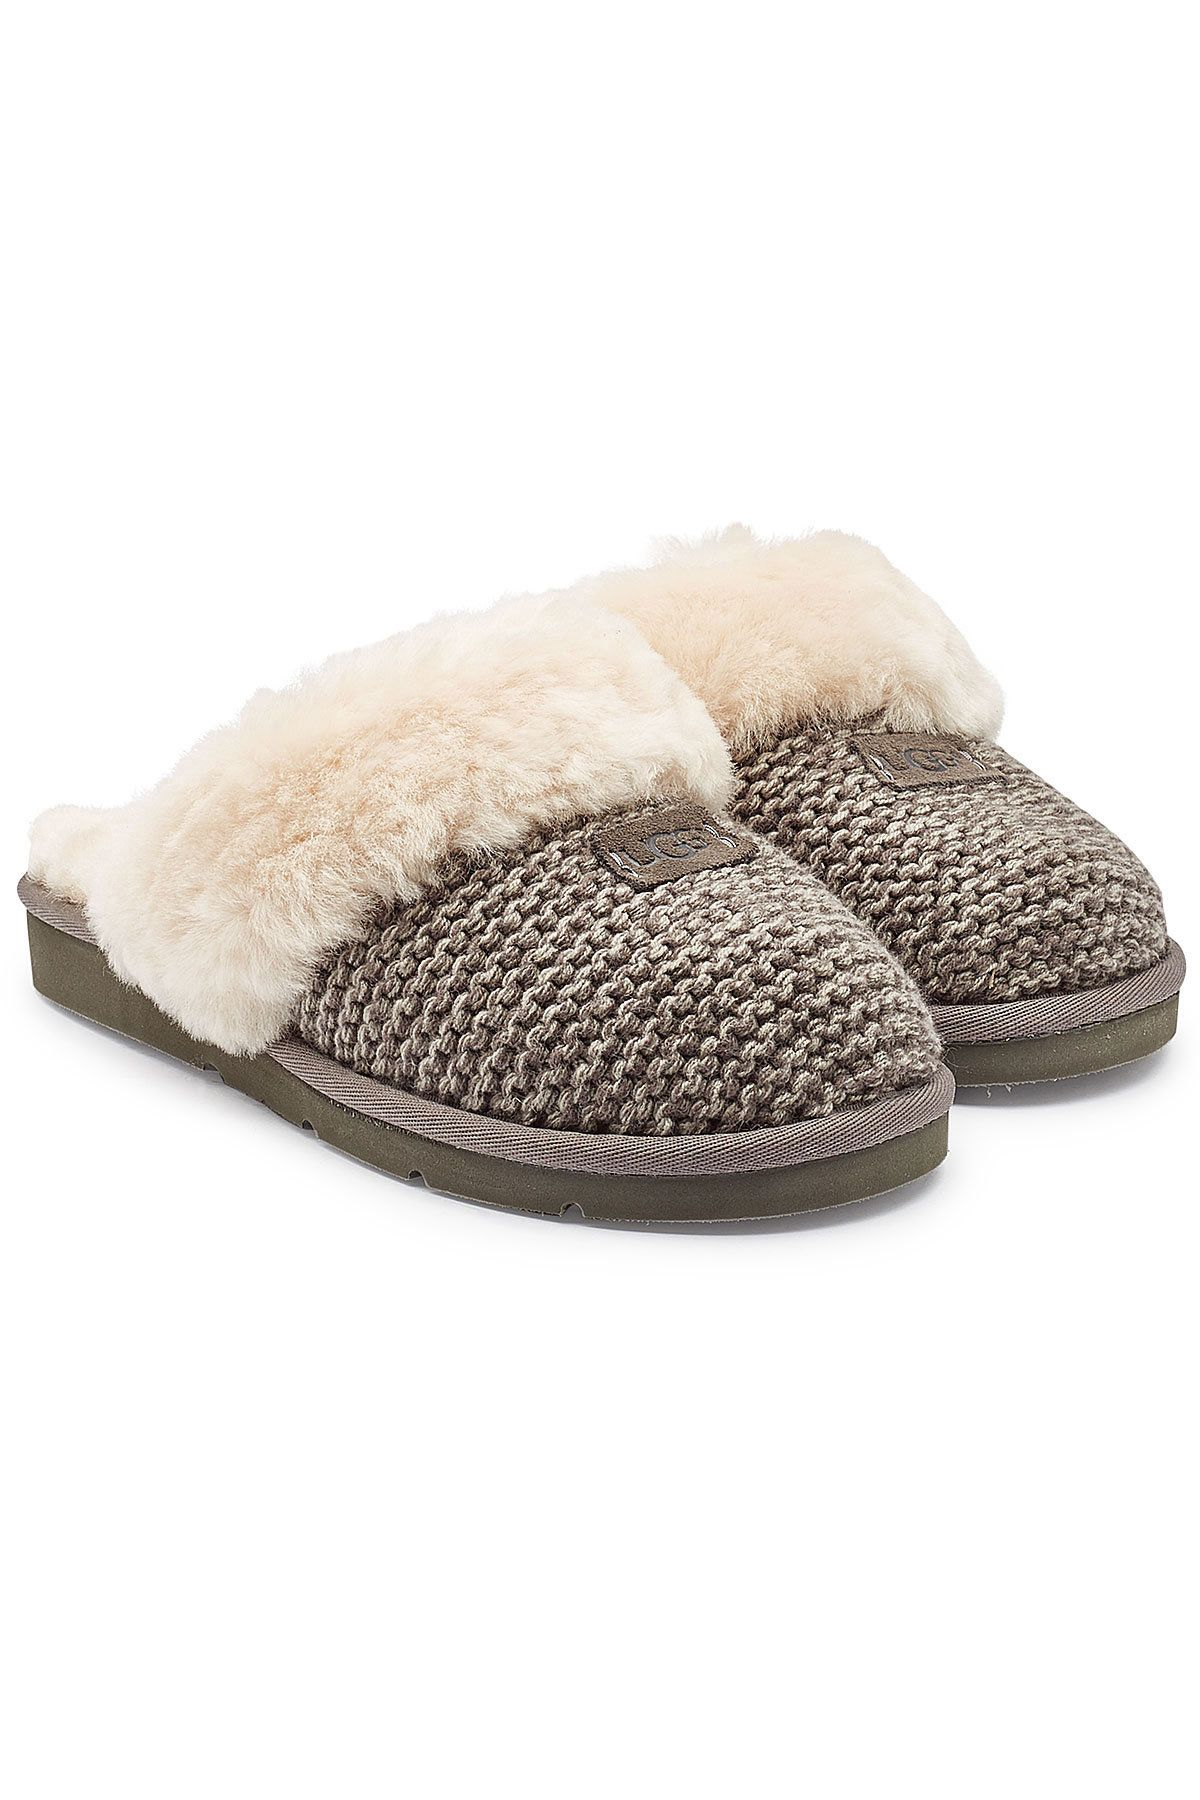 83e2dc573d8 Ugg - Cozy Knit Cable Slippers with Sheepskin on STYLEBOP.com